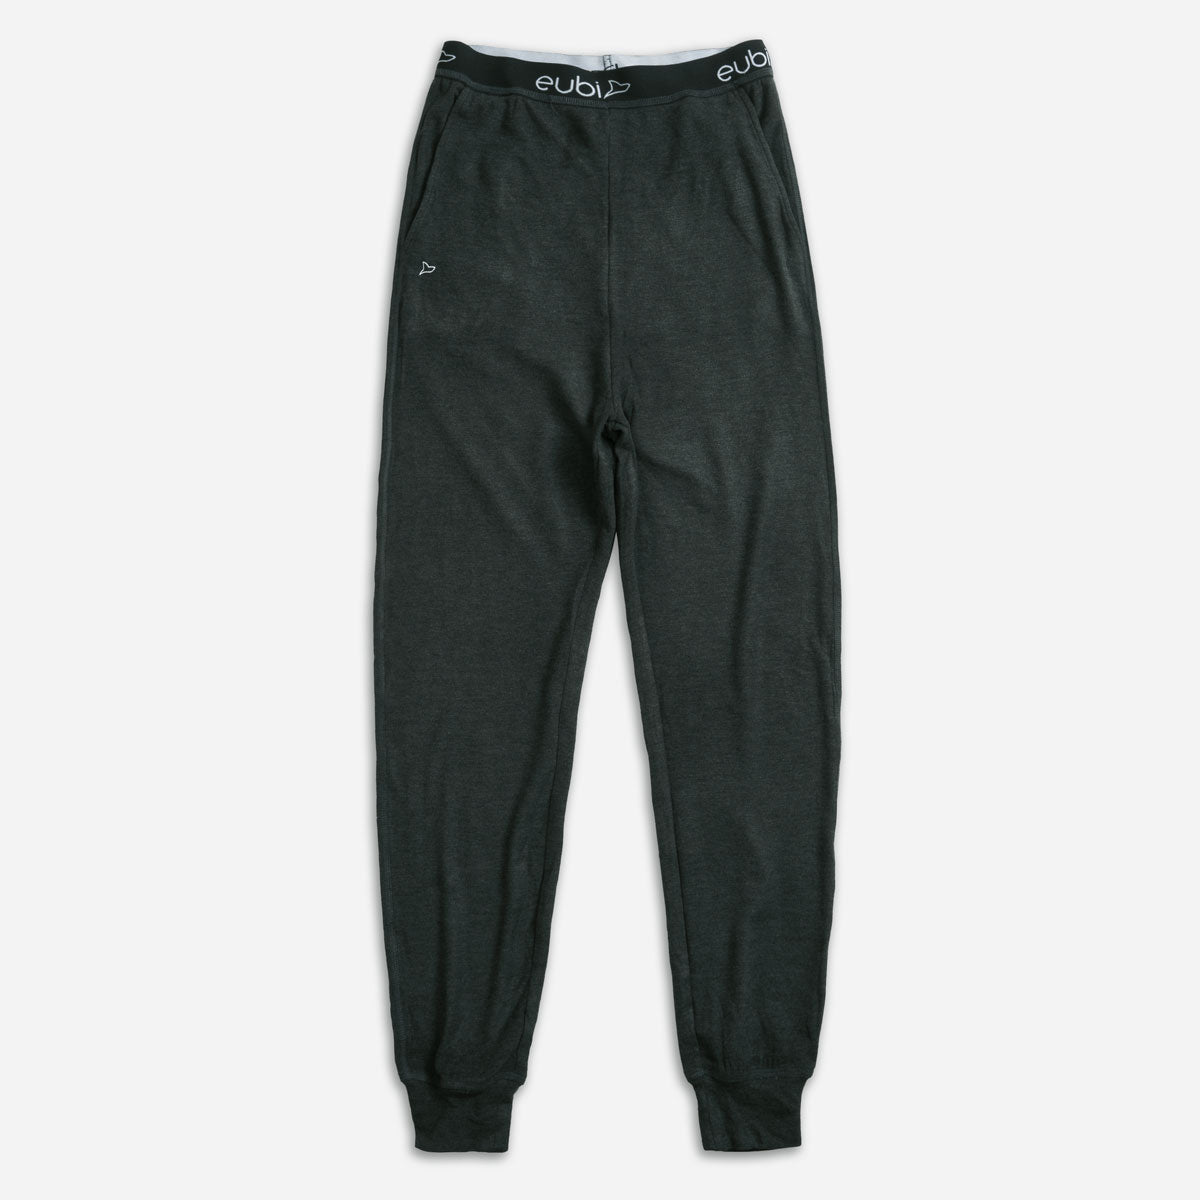 Grey SoftAF ThermoTech Sleep Pants